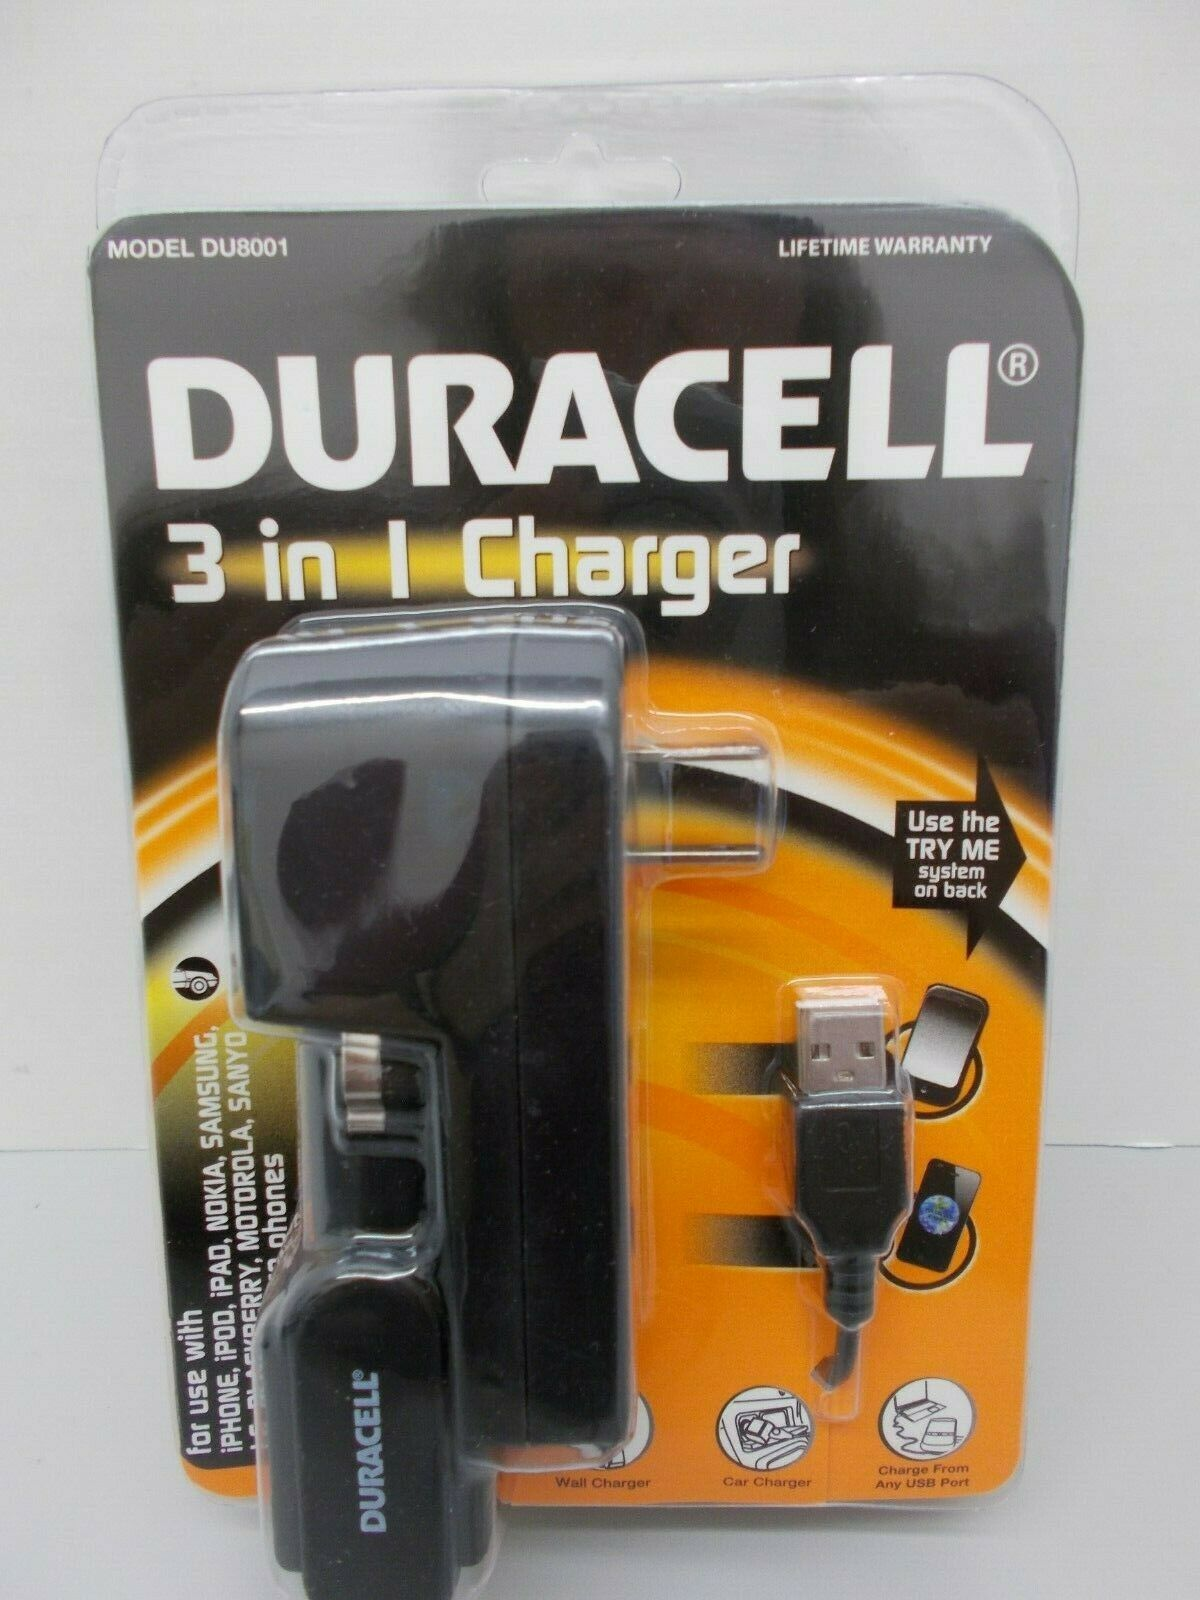 Duracell Du8006 3 In 1 Charger For Sale Online Ebay